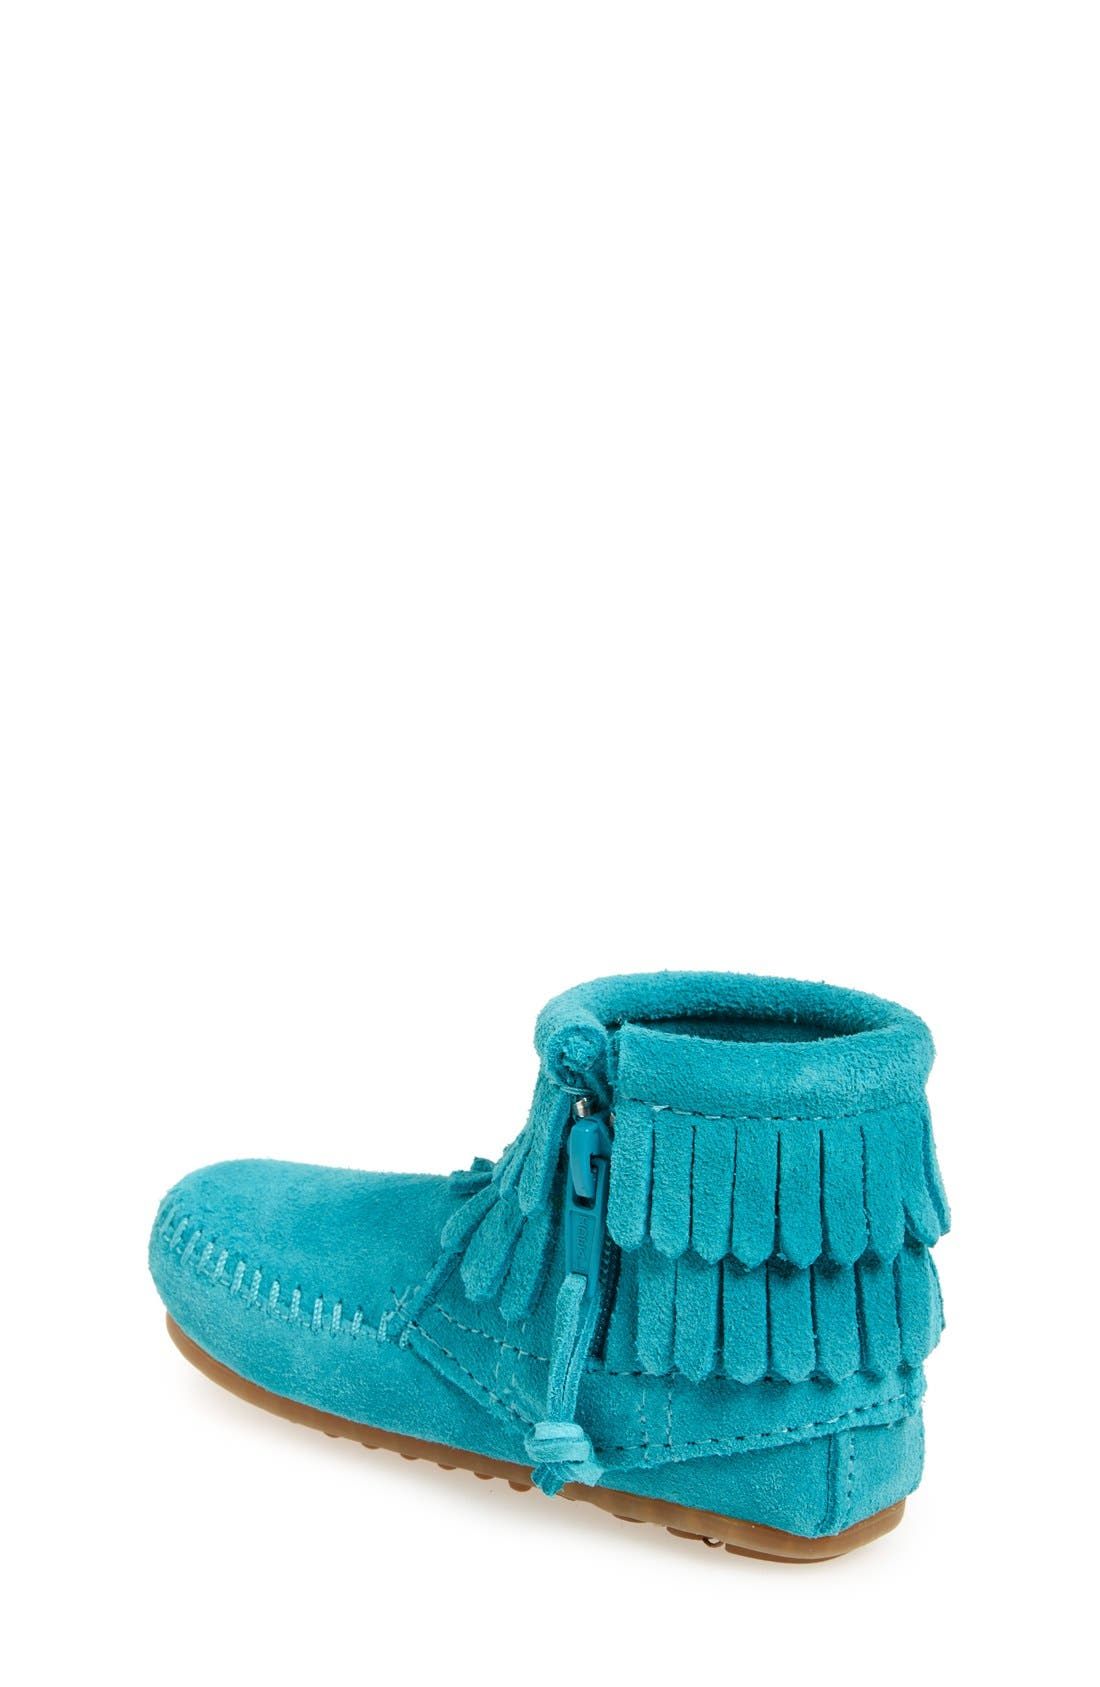 Alternate Image 2  - Minnetonka 'Double Fringe' Boot (Walker, Toddler, Little Kid & Big Kid)